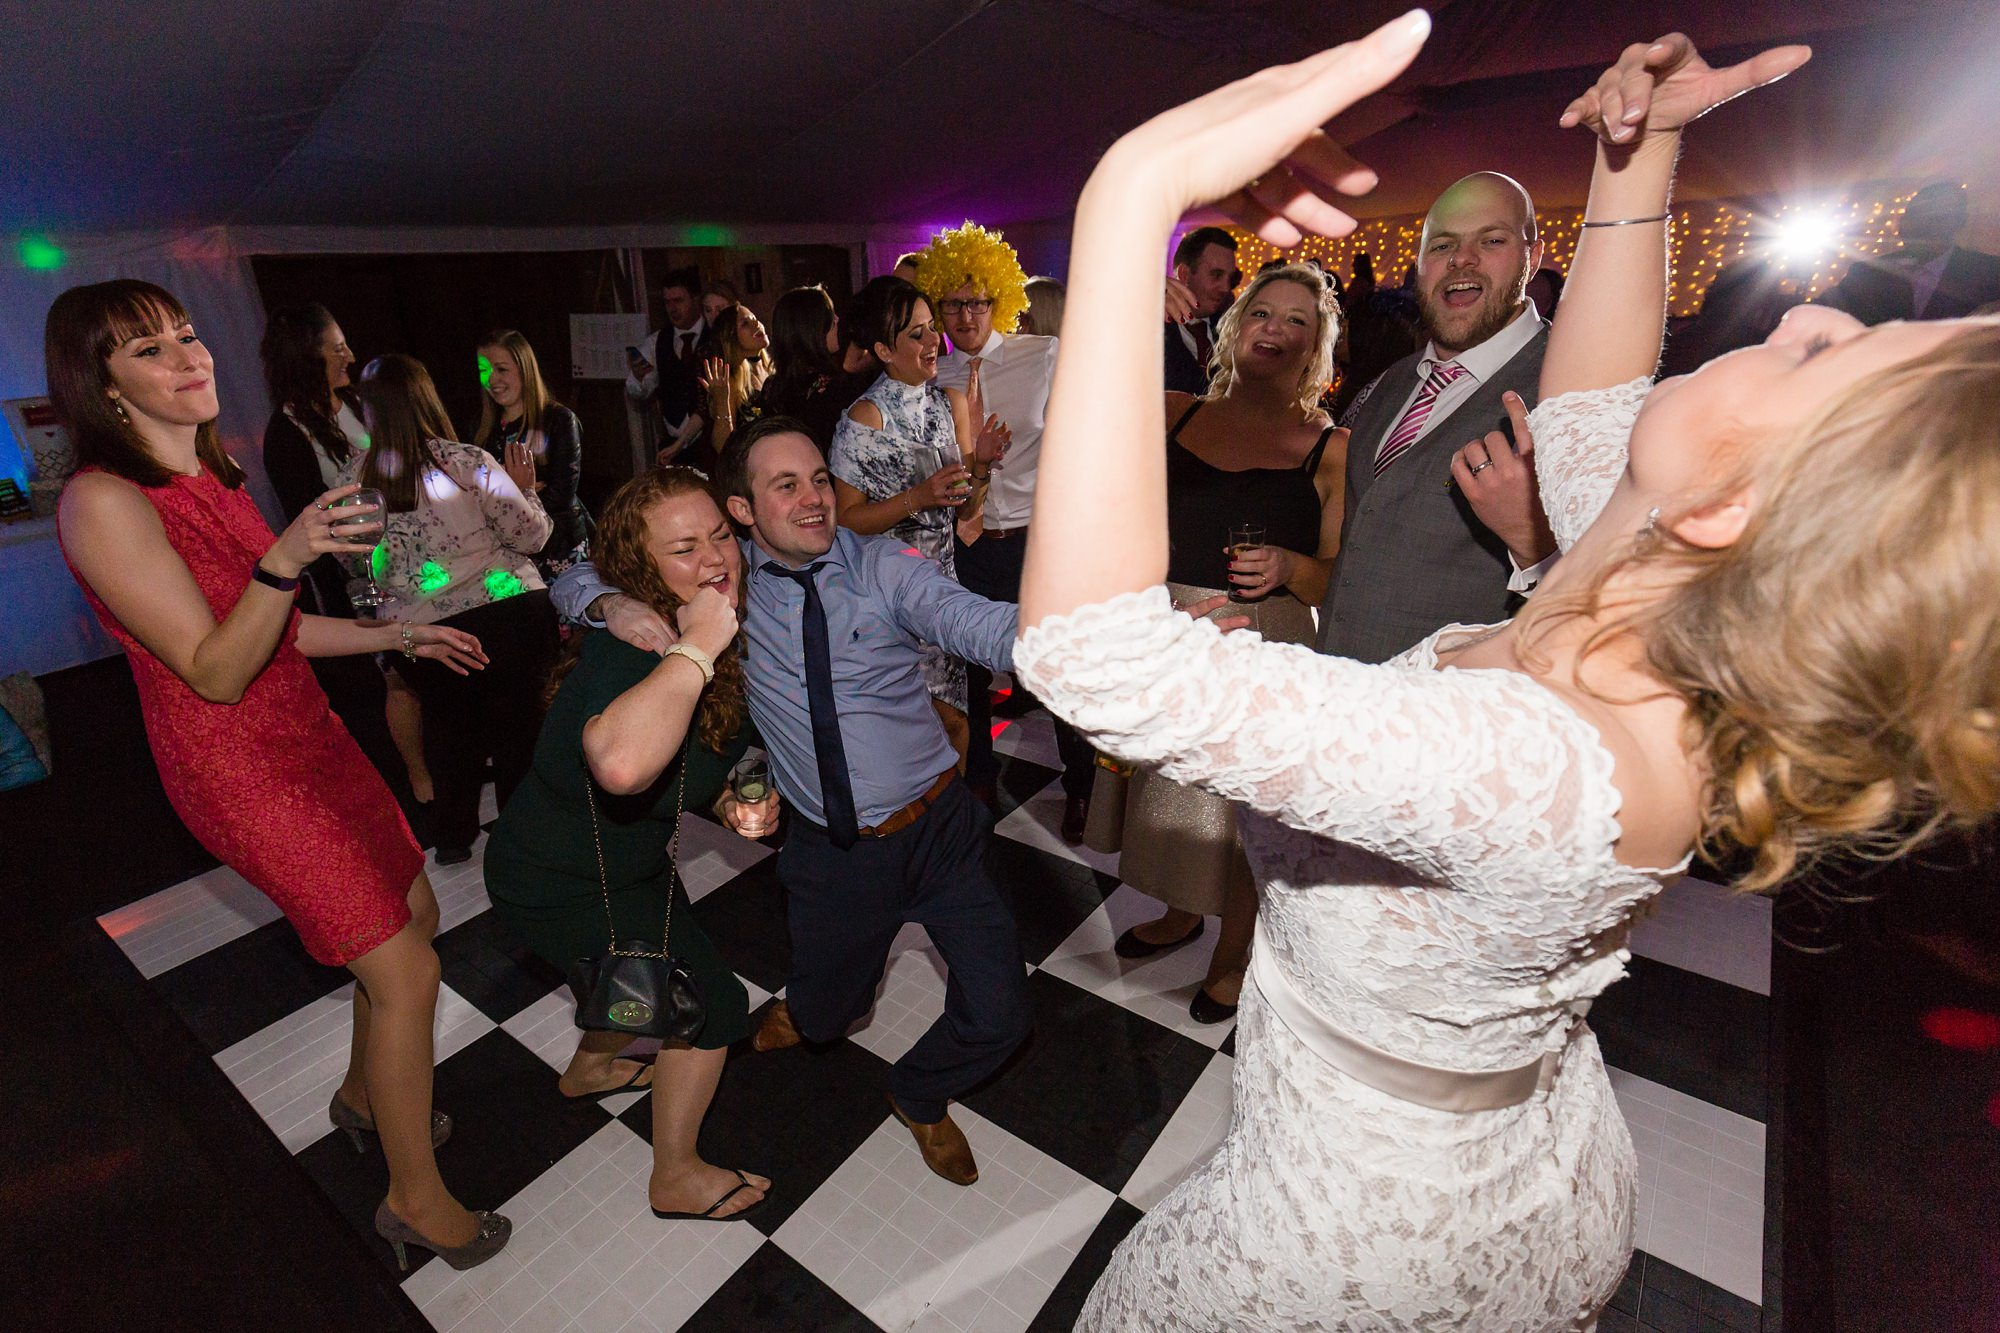 Bride dances with guests and acts silly